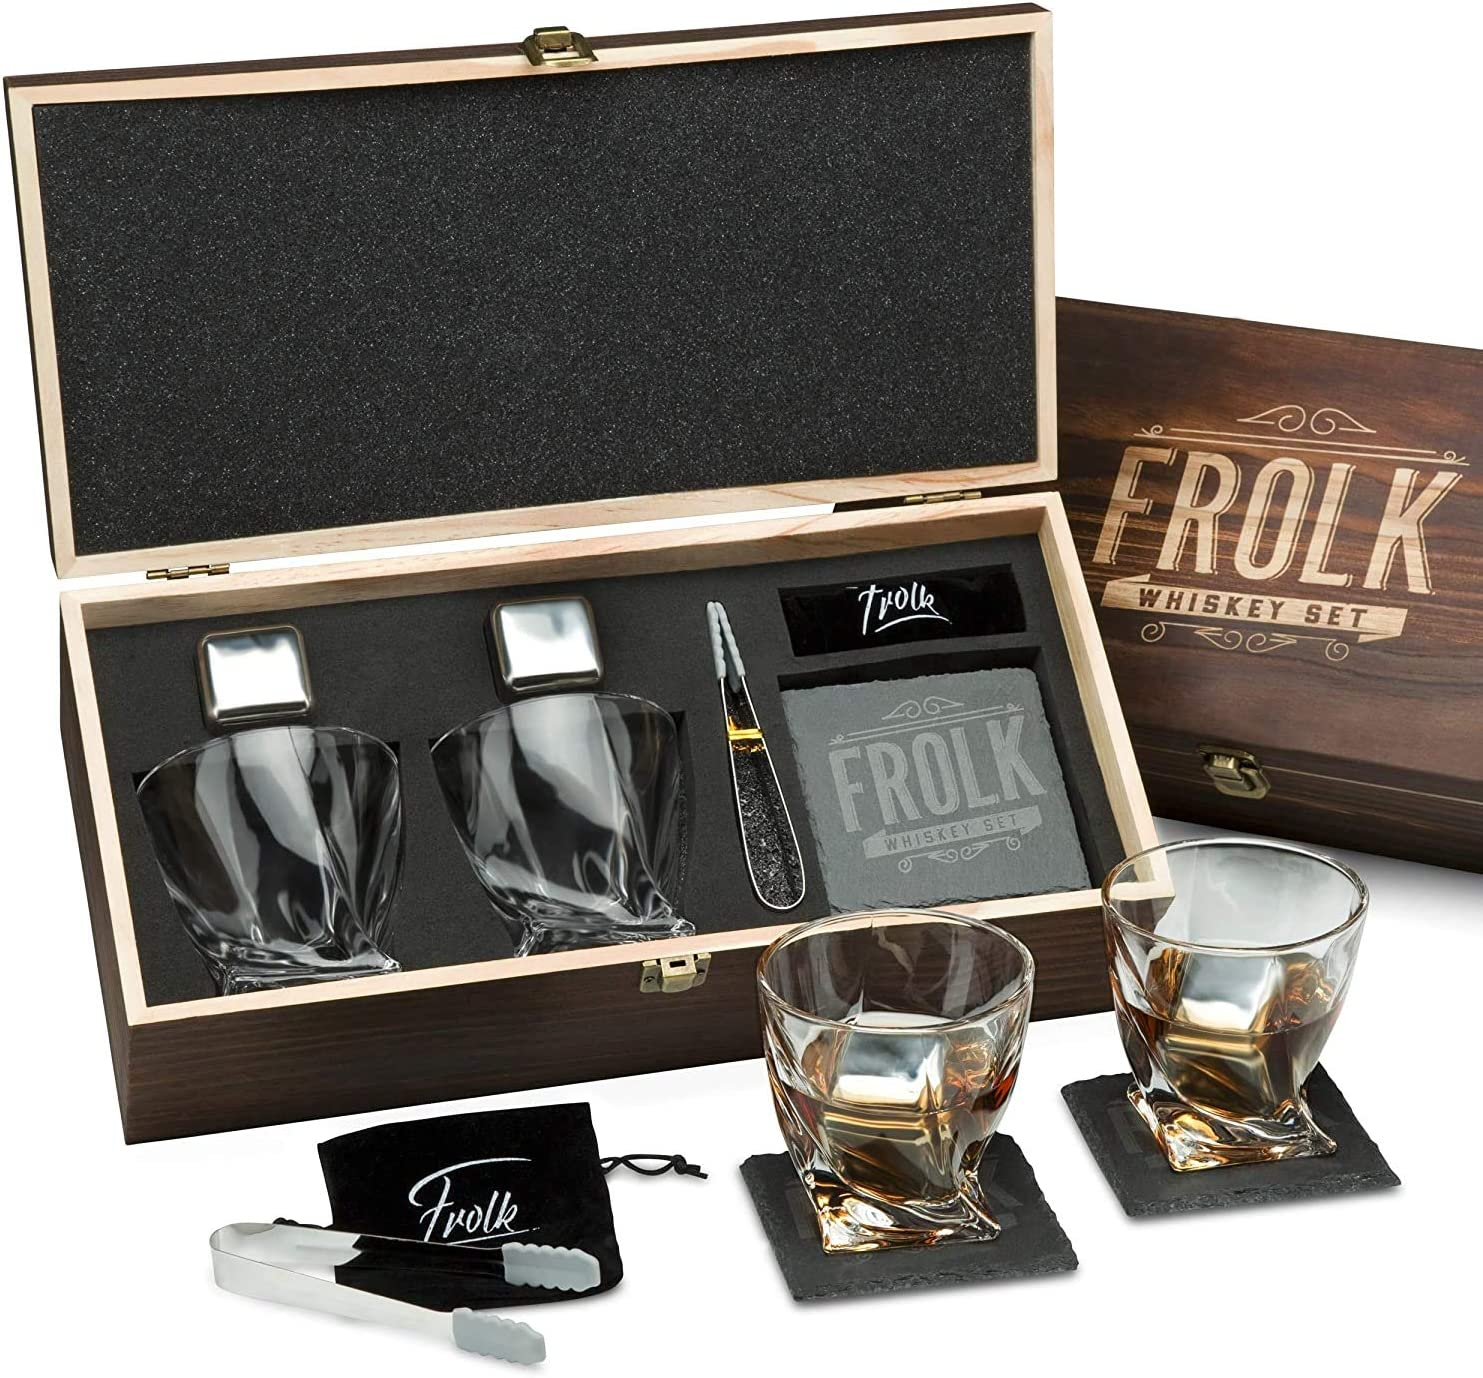 Whiskey Stones & Glasses Gift Set for Men & Women – 2 King-Sized Chilling Stainless-Steel Whiskey Cubes - 11 oz 2 Large Twisted Whiskey Glasses, Stone Coasters, Tongs – Luxury Set in Real Wood Box